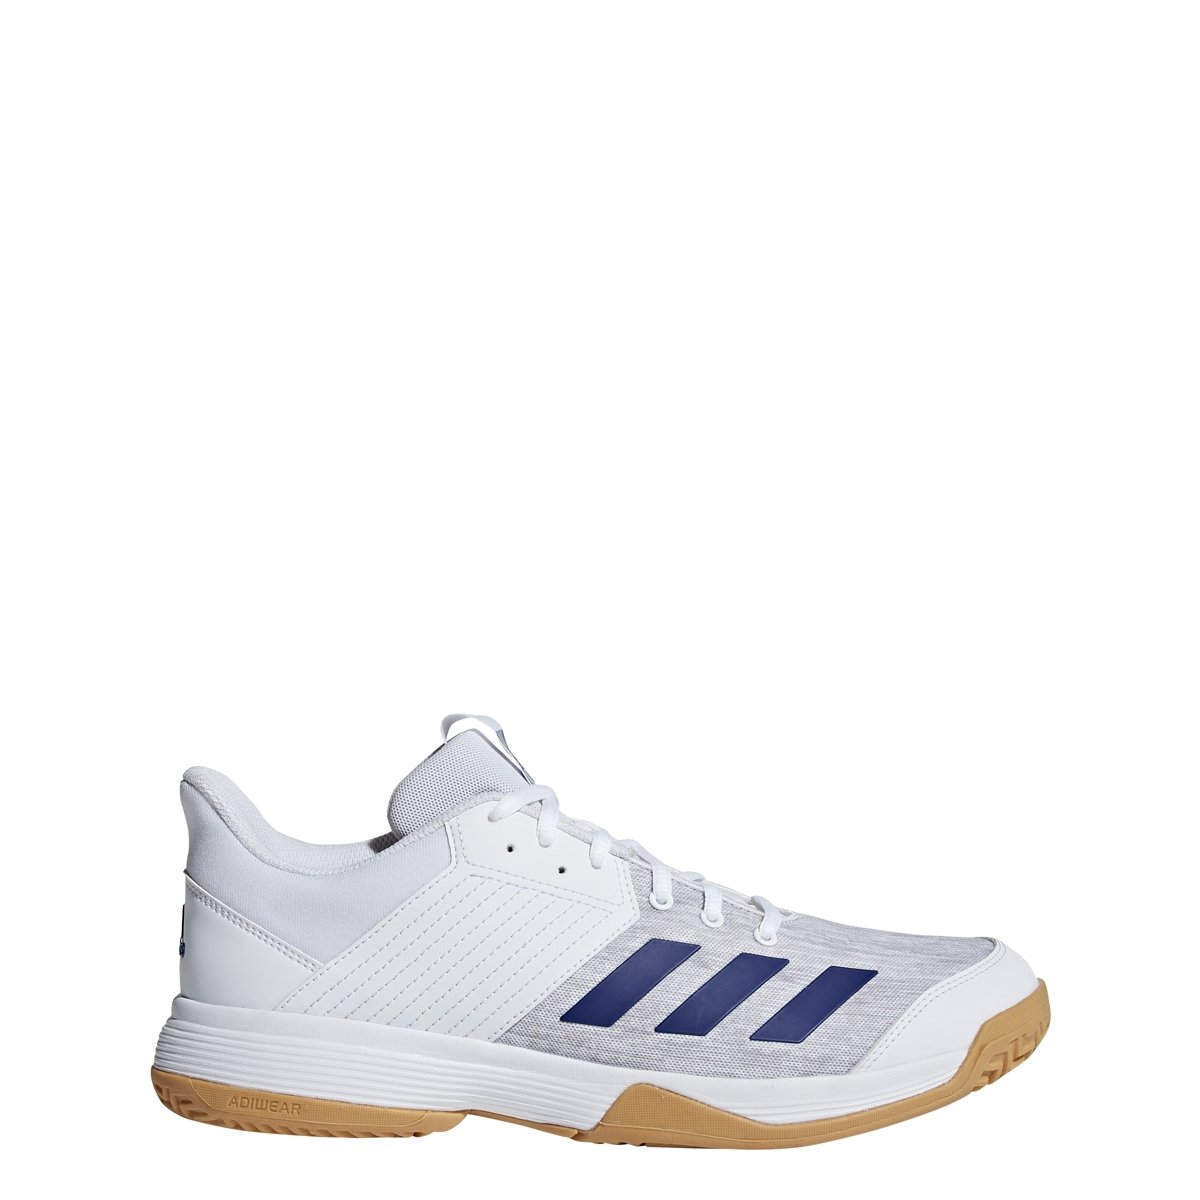 adidas Men's Ligra 6 Volleyball Shoe, White/Mystery Ink/Grey, 4.5 M US